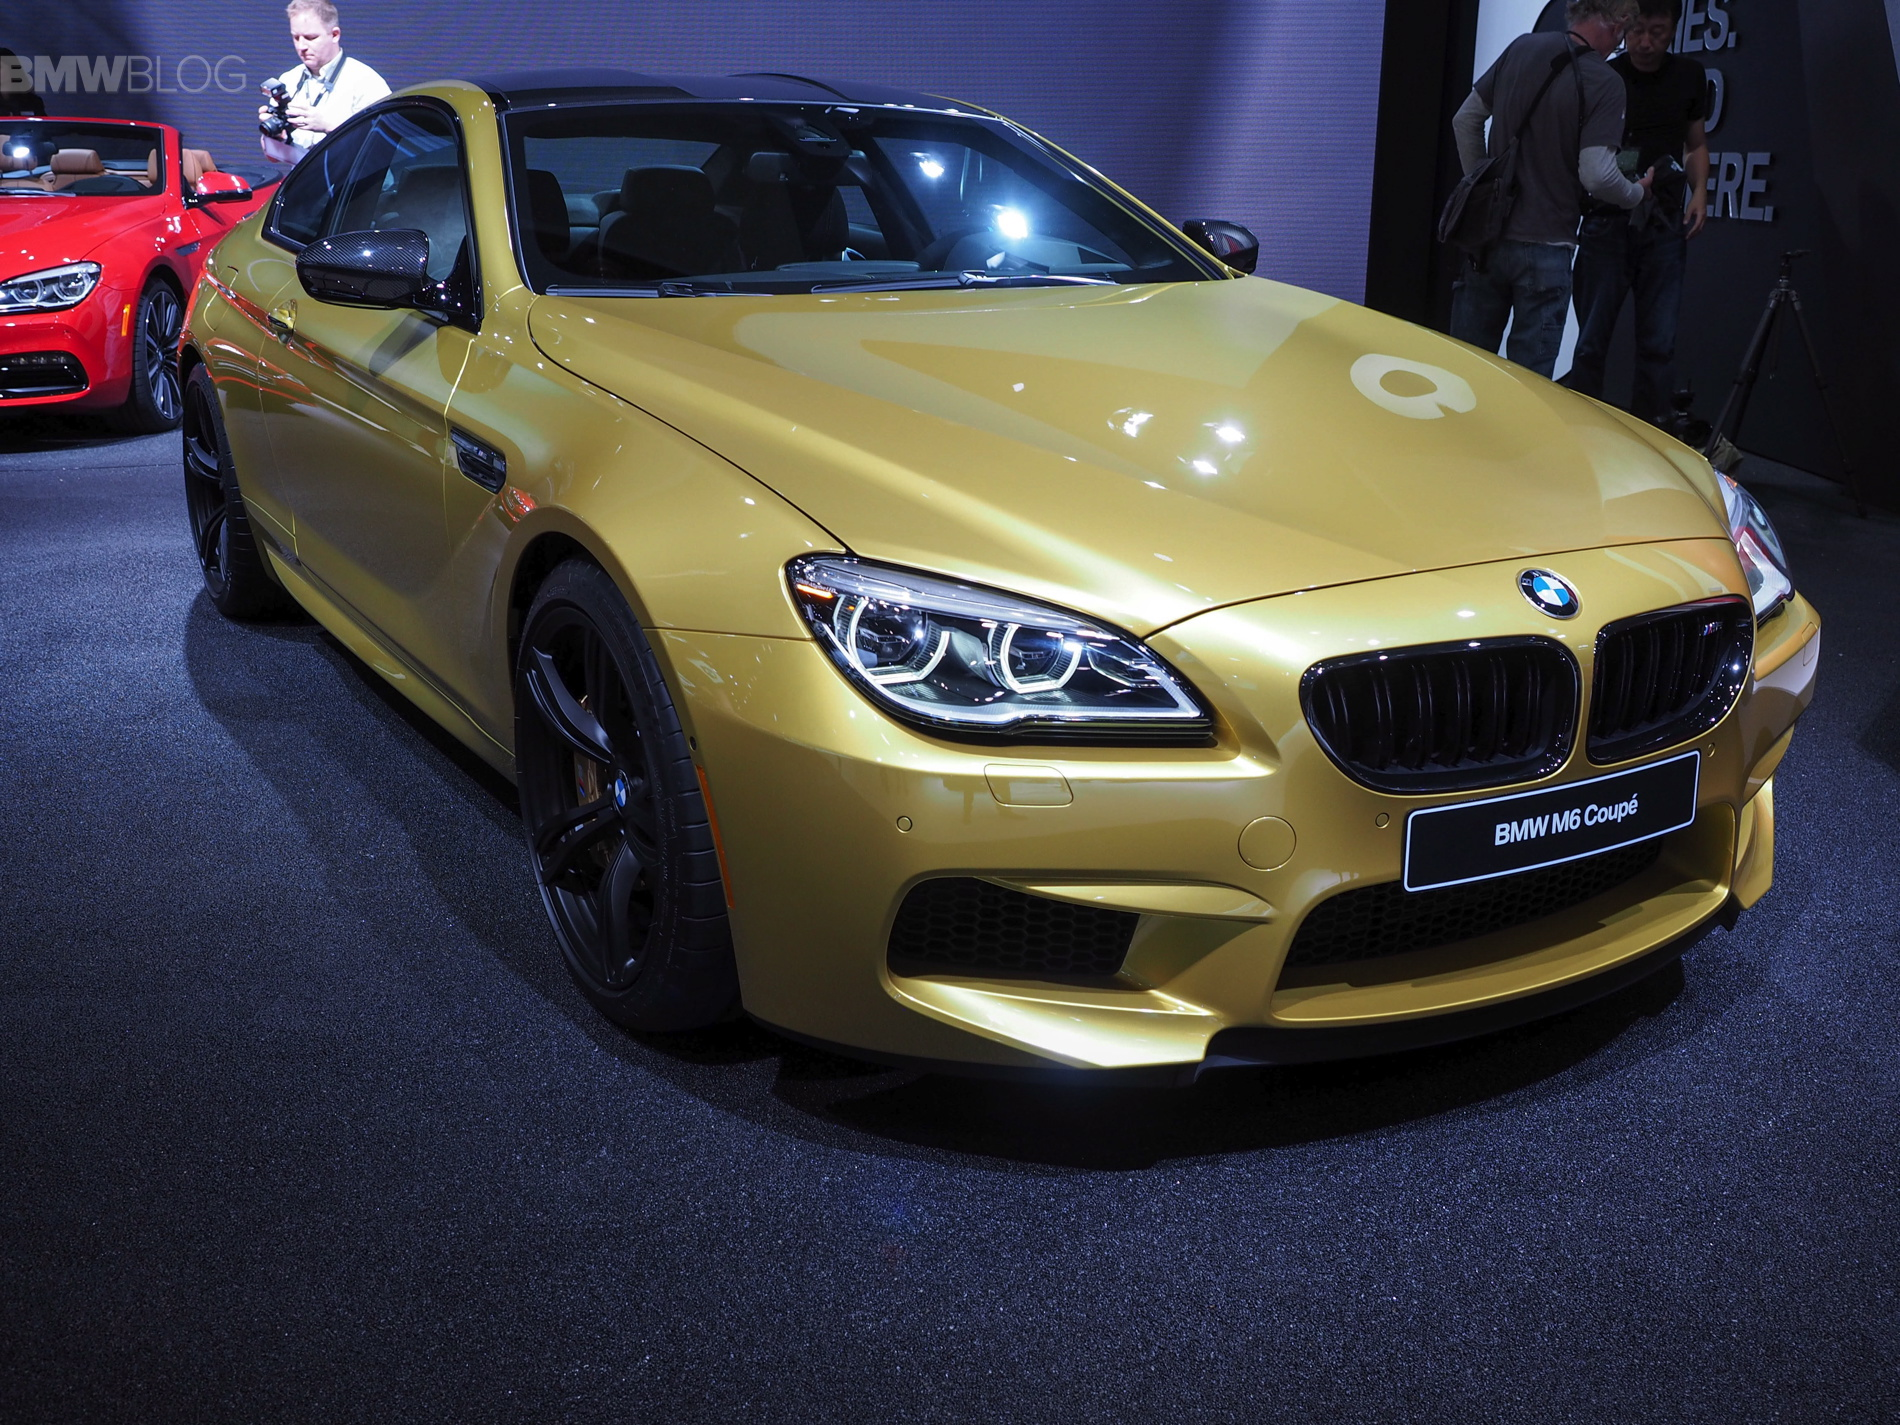 2016 bmw m6 coupe facelift austin yellow 03